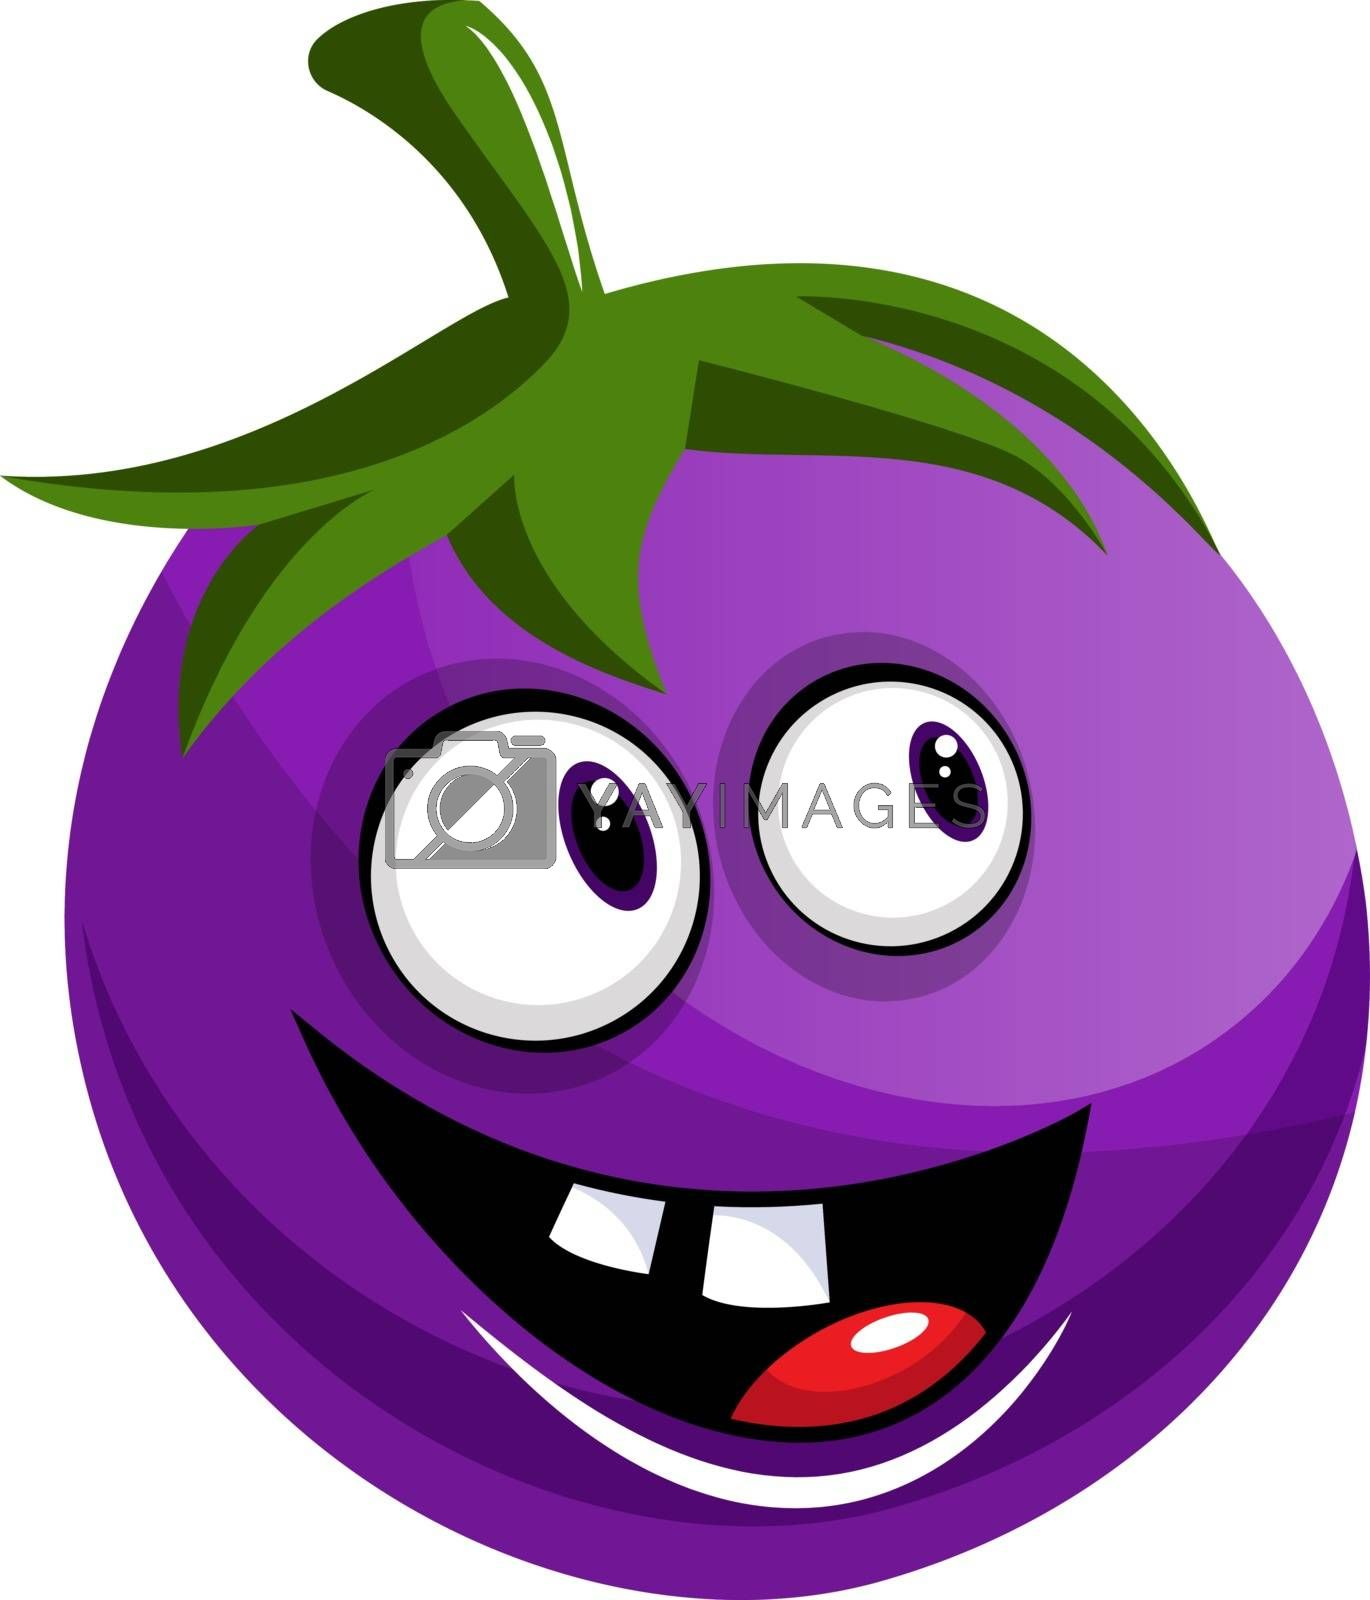 Royalty free image of Cheerful brinjal illustration vector on white background by Morphart